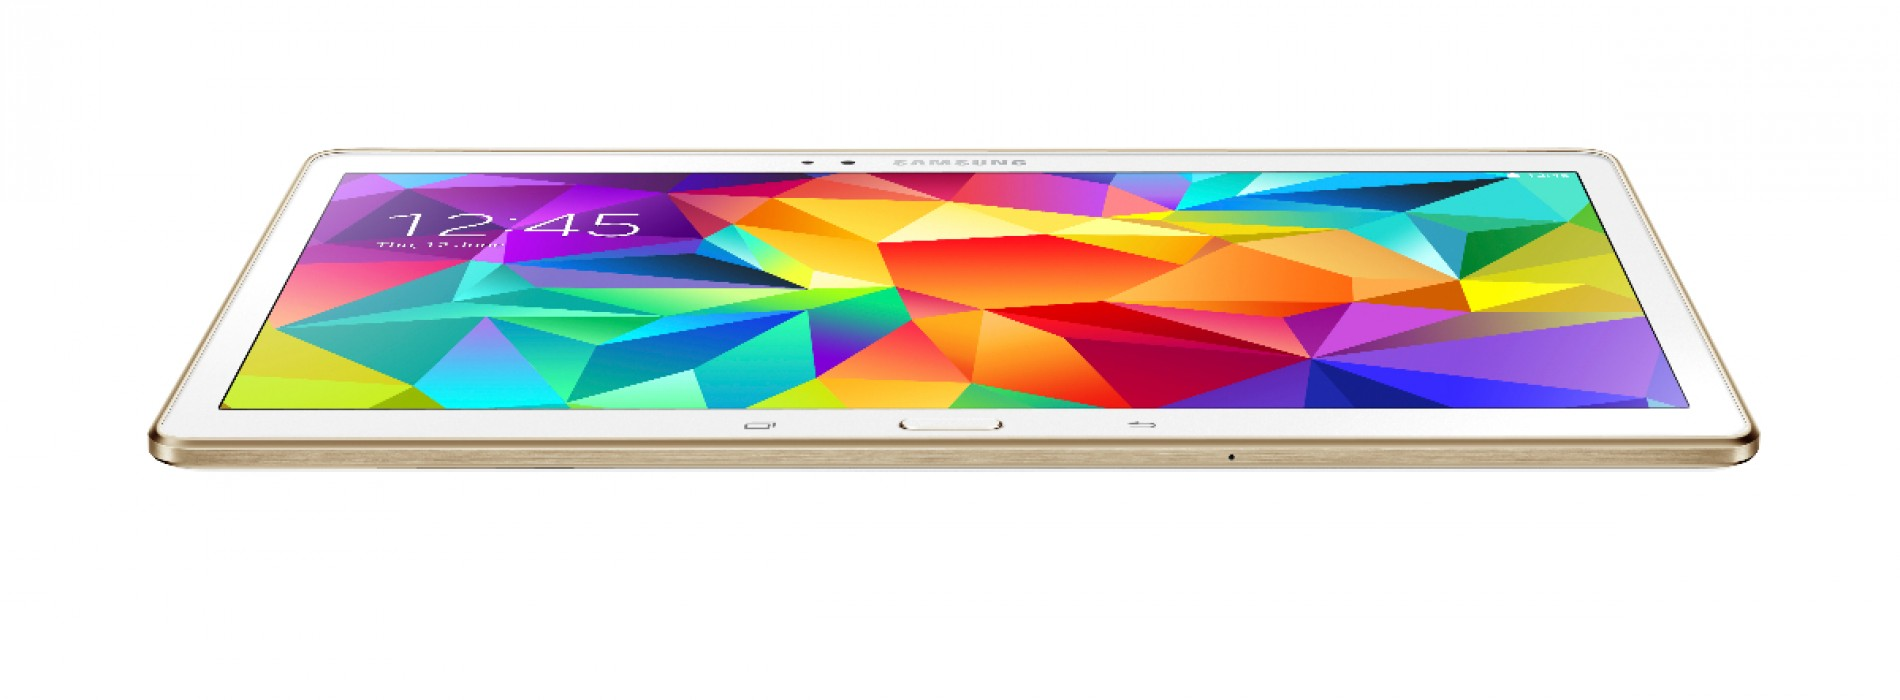 Sprint to carry Samsung Galaxy Tab S 10.5 on September 12